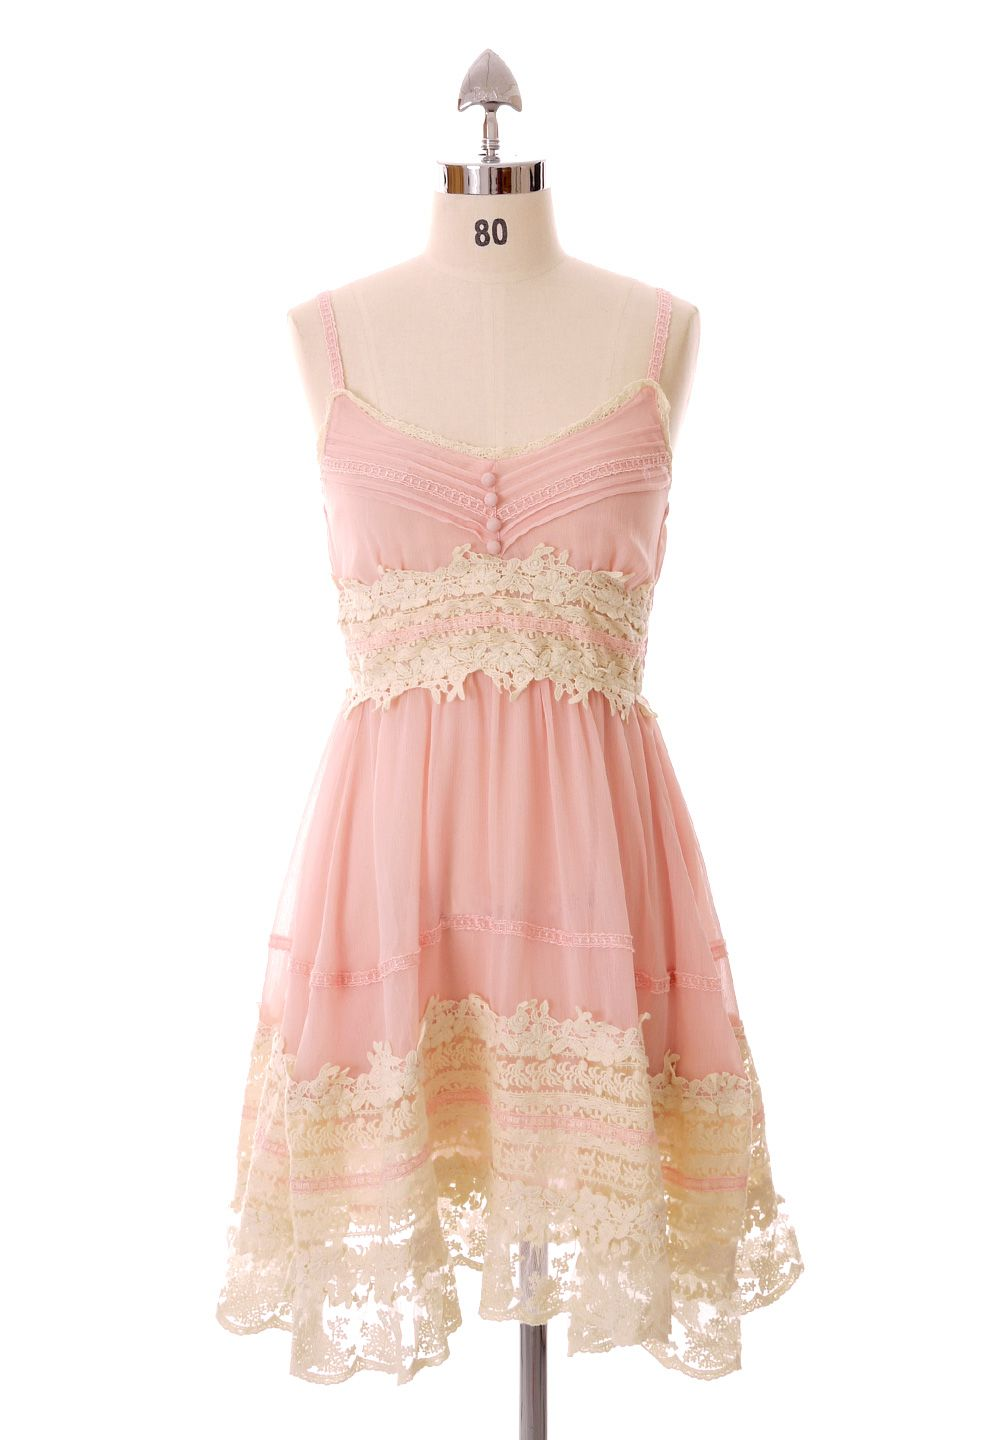 Got a Date Pink Lace Dress - Floral - Dress - Retro, Indie and ...